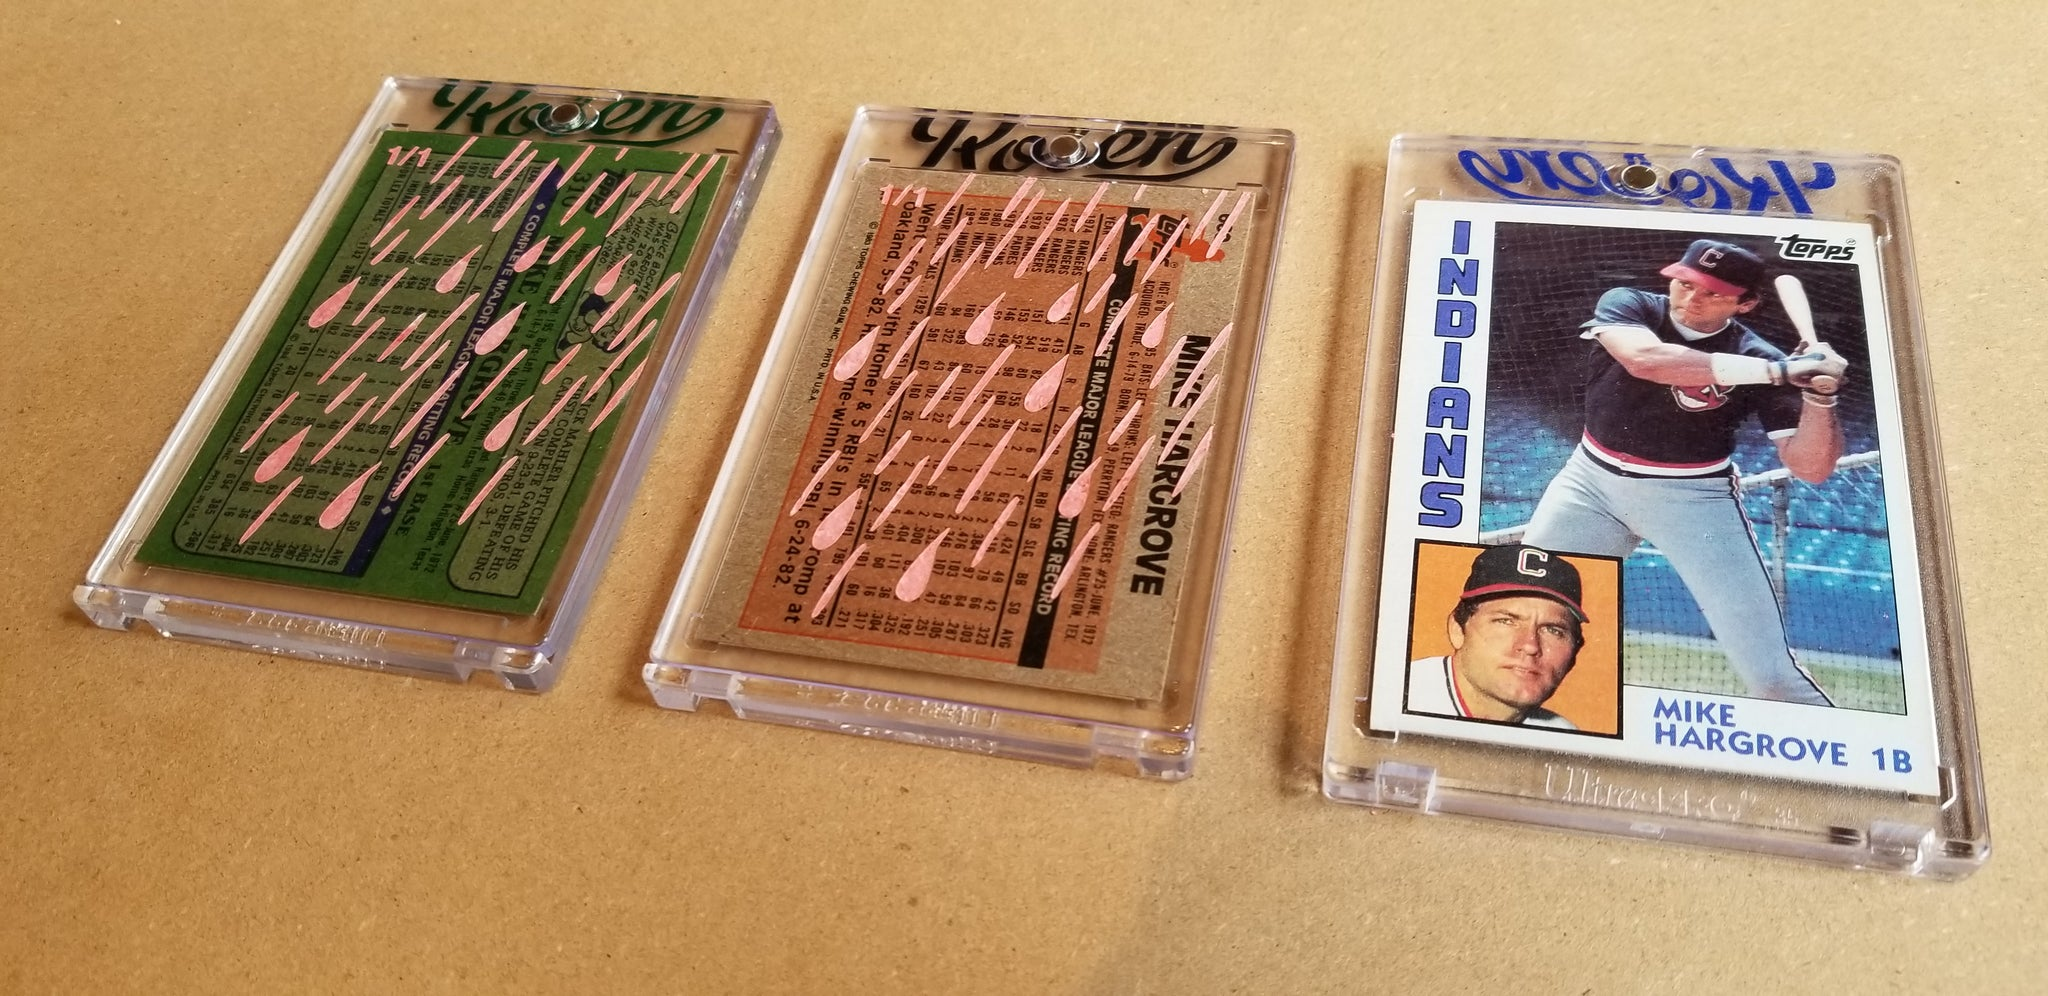 Baseball card art by Matthew Lee Rosen (aka Matthew Rosen) - Gum Stick Collector Cards - Mike Hargrove